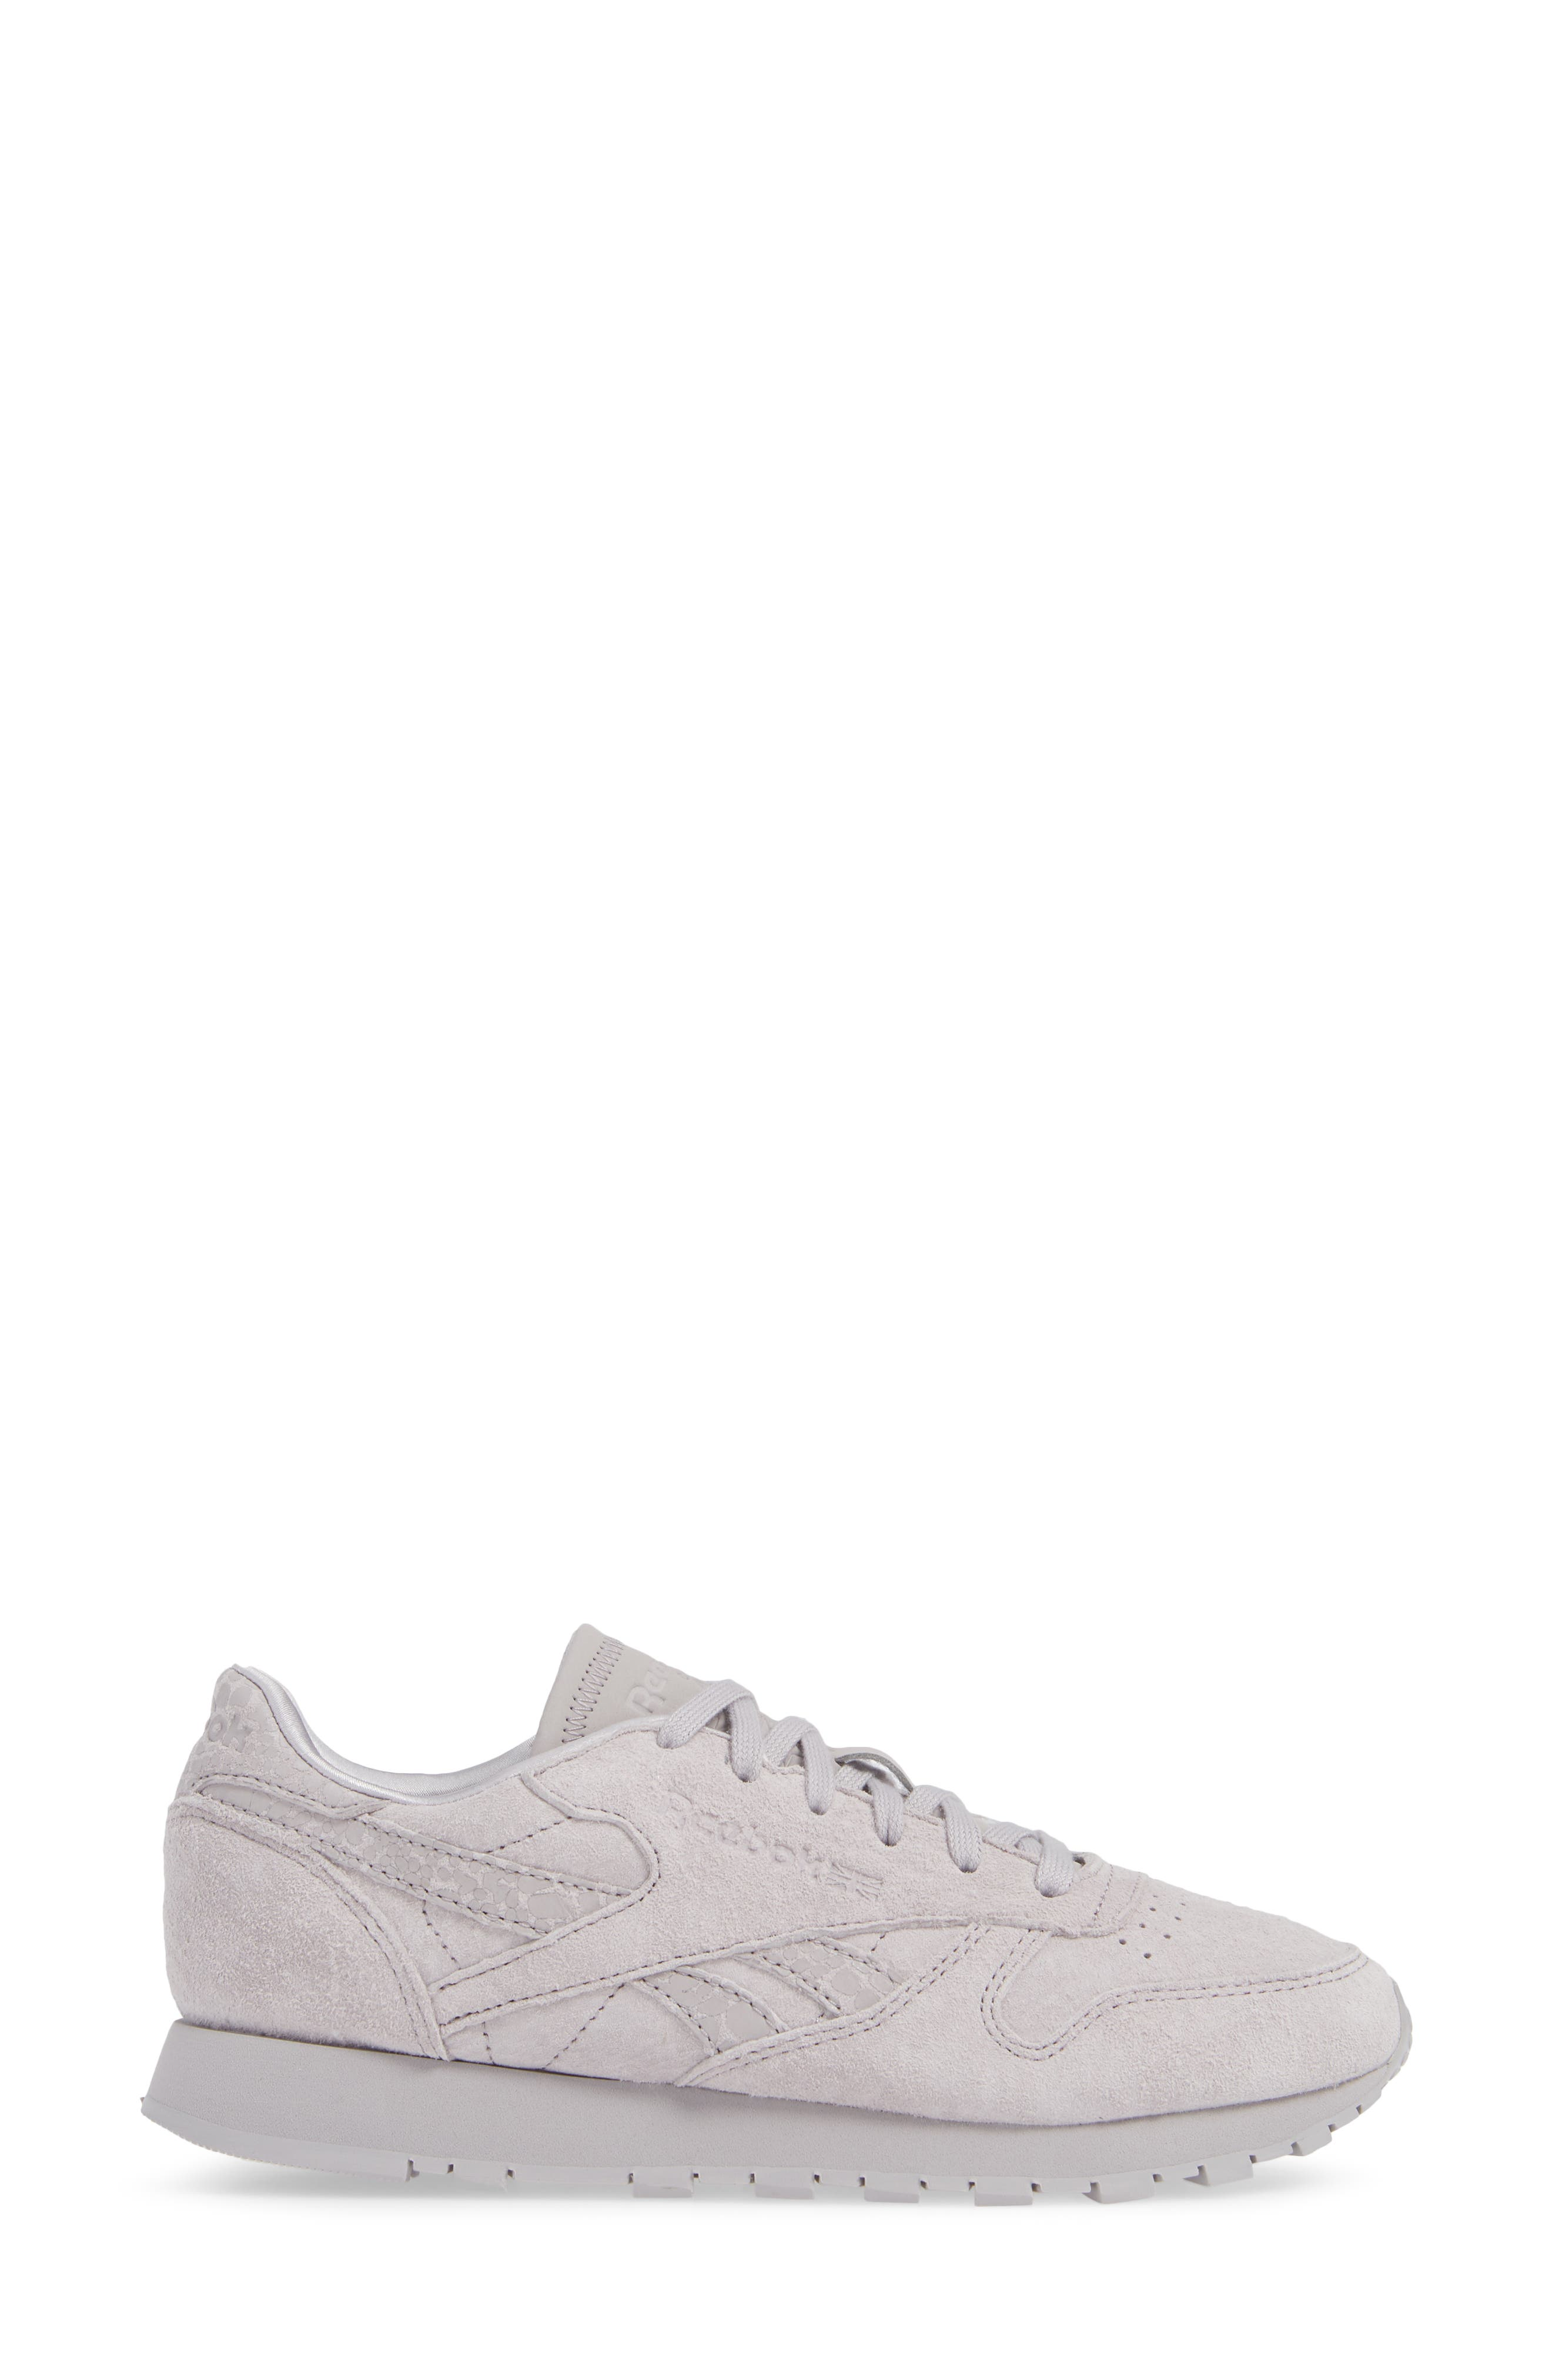 Classic Leather Sneaker,                             Alternate thumbnail 3, color,                             WHISPER GREY